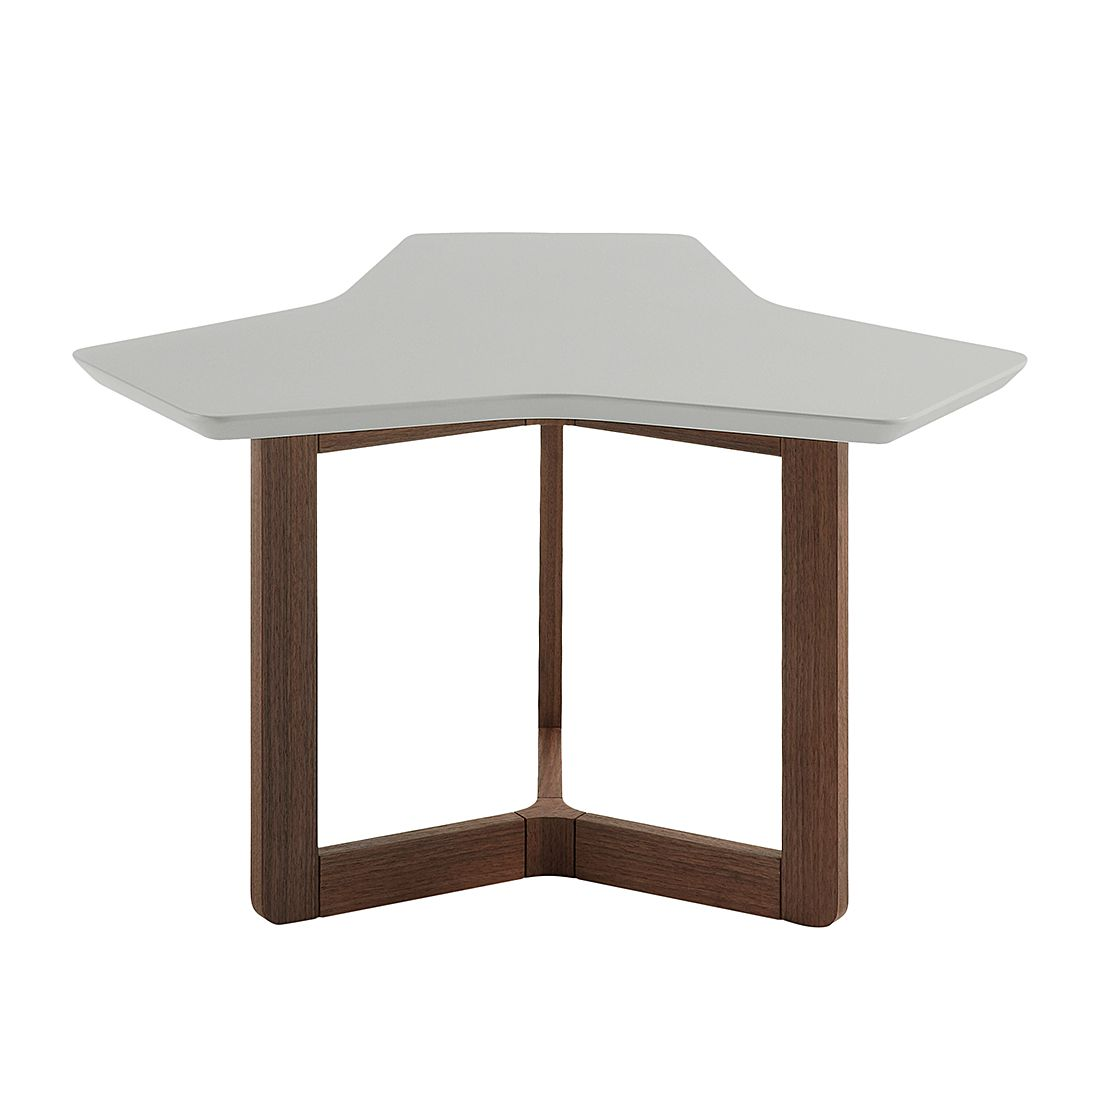 Table d'appoint Solberga - Gris mat / Noyer, Morteens